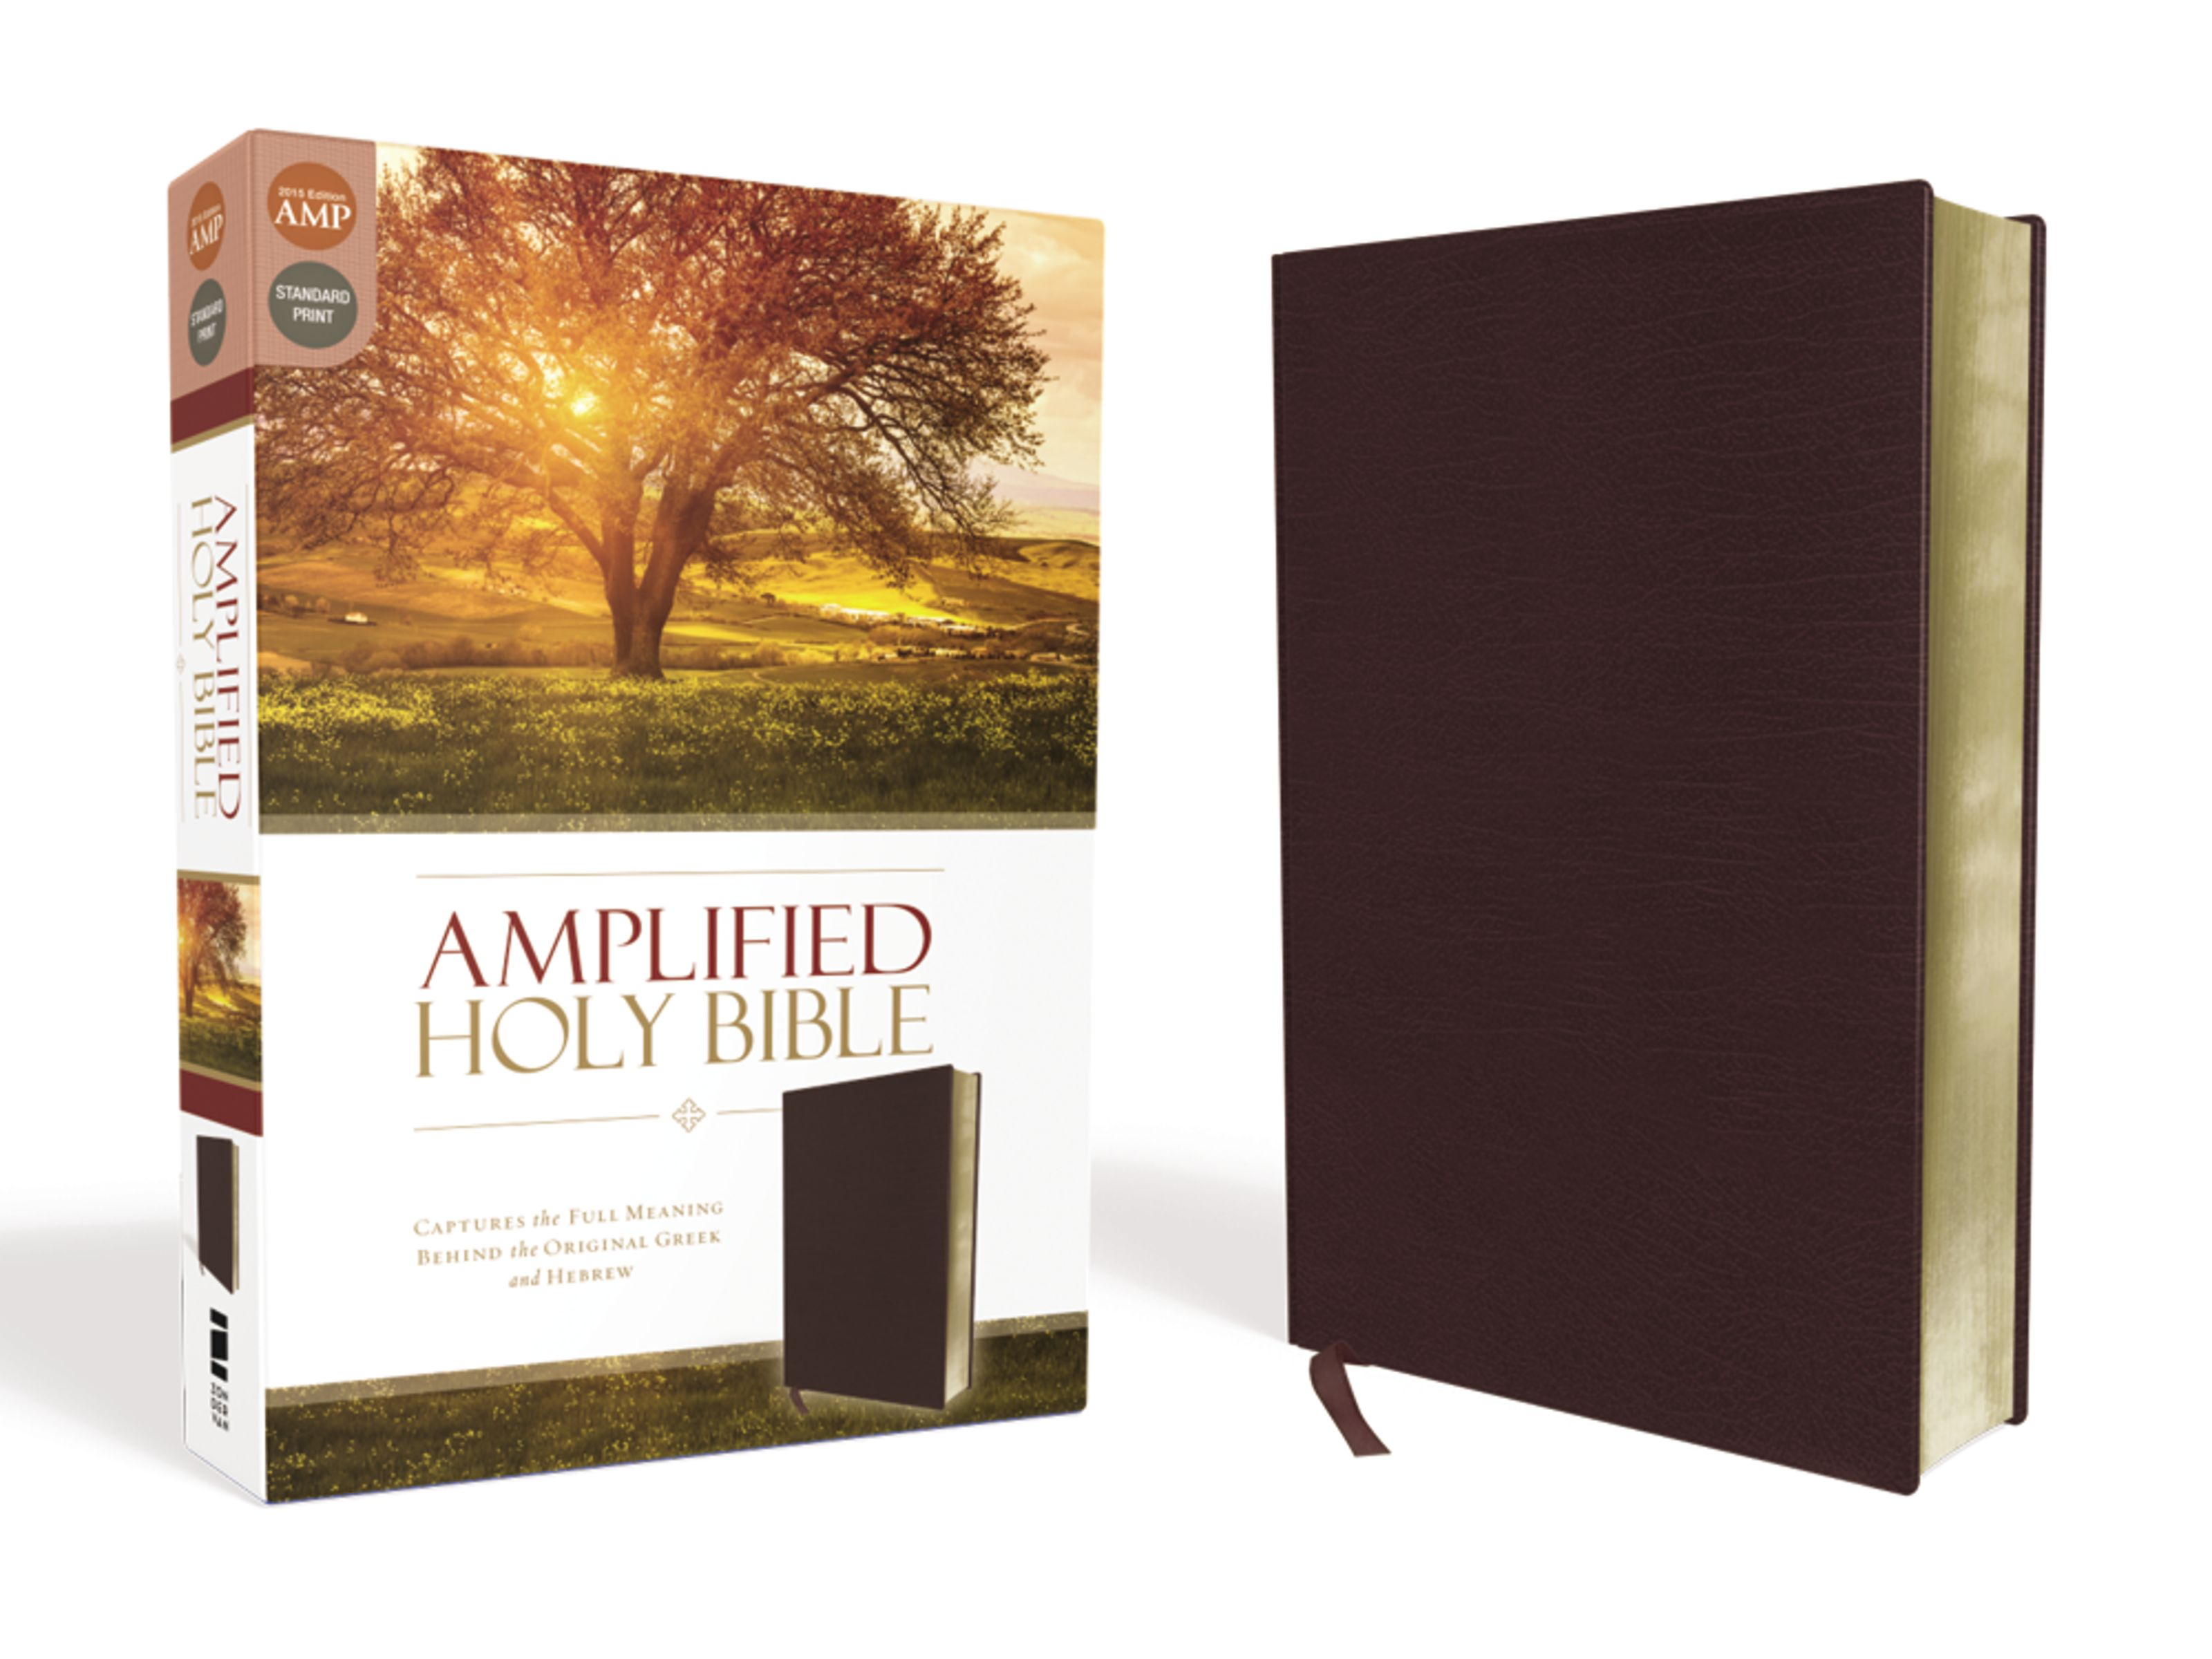 Amplified Holy Bible, Bonded Leather, Burgundy